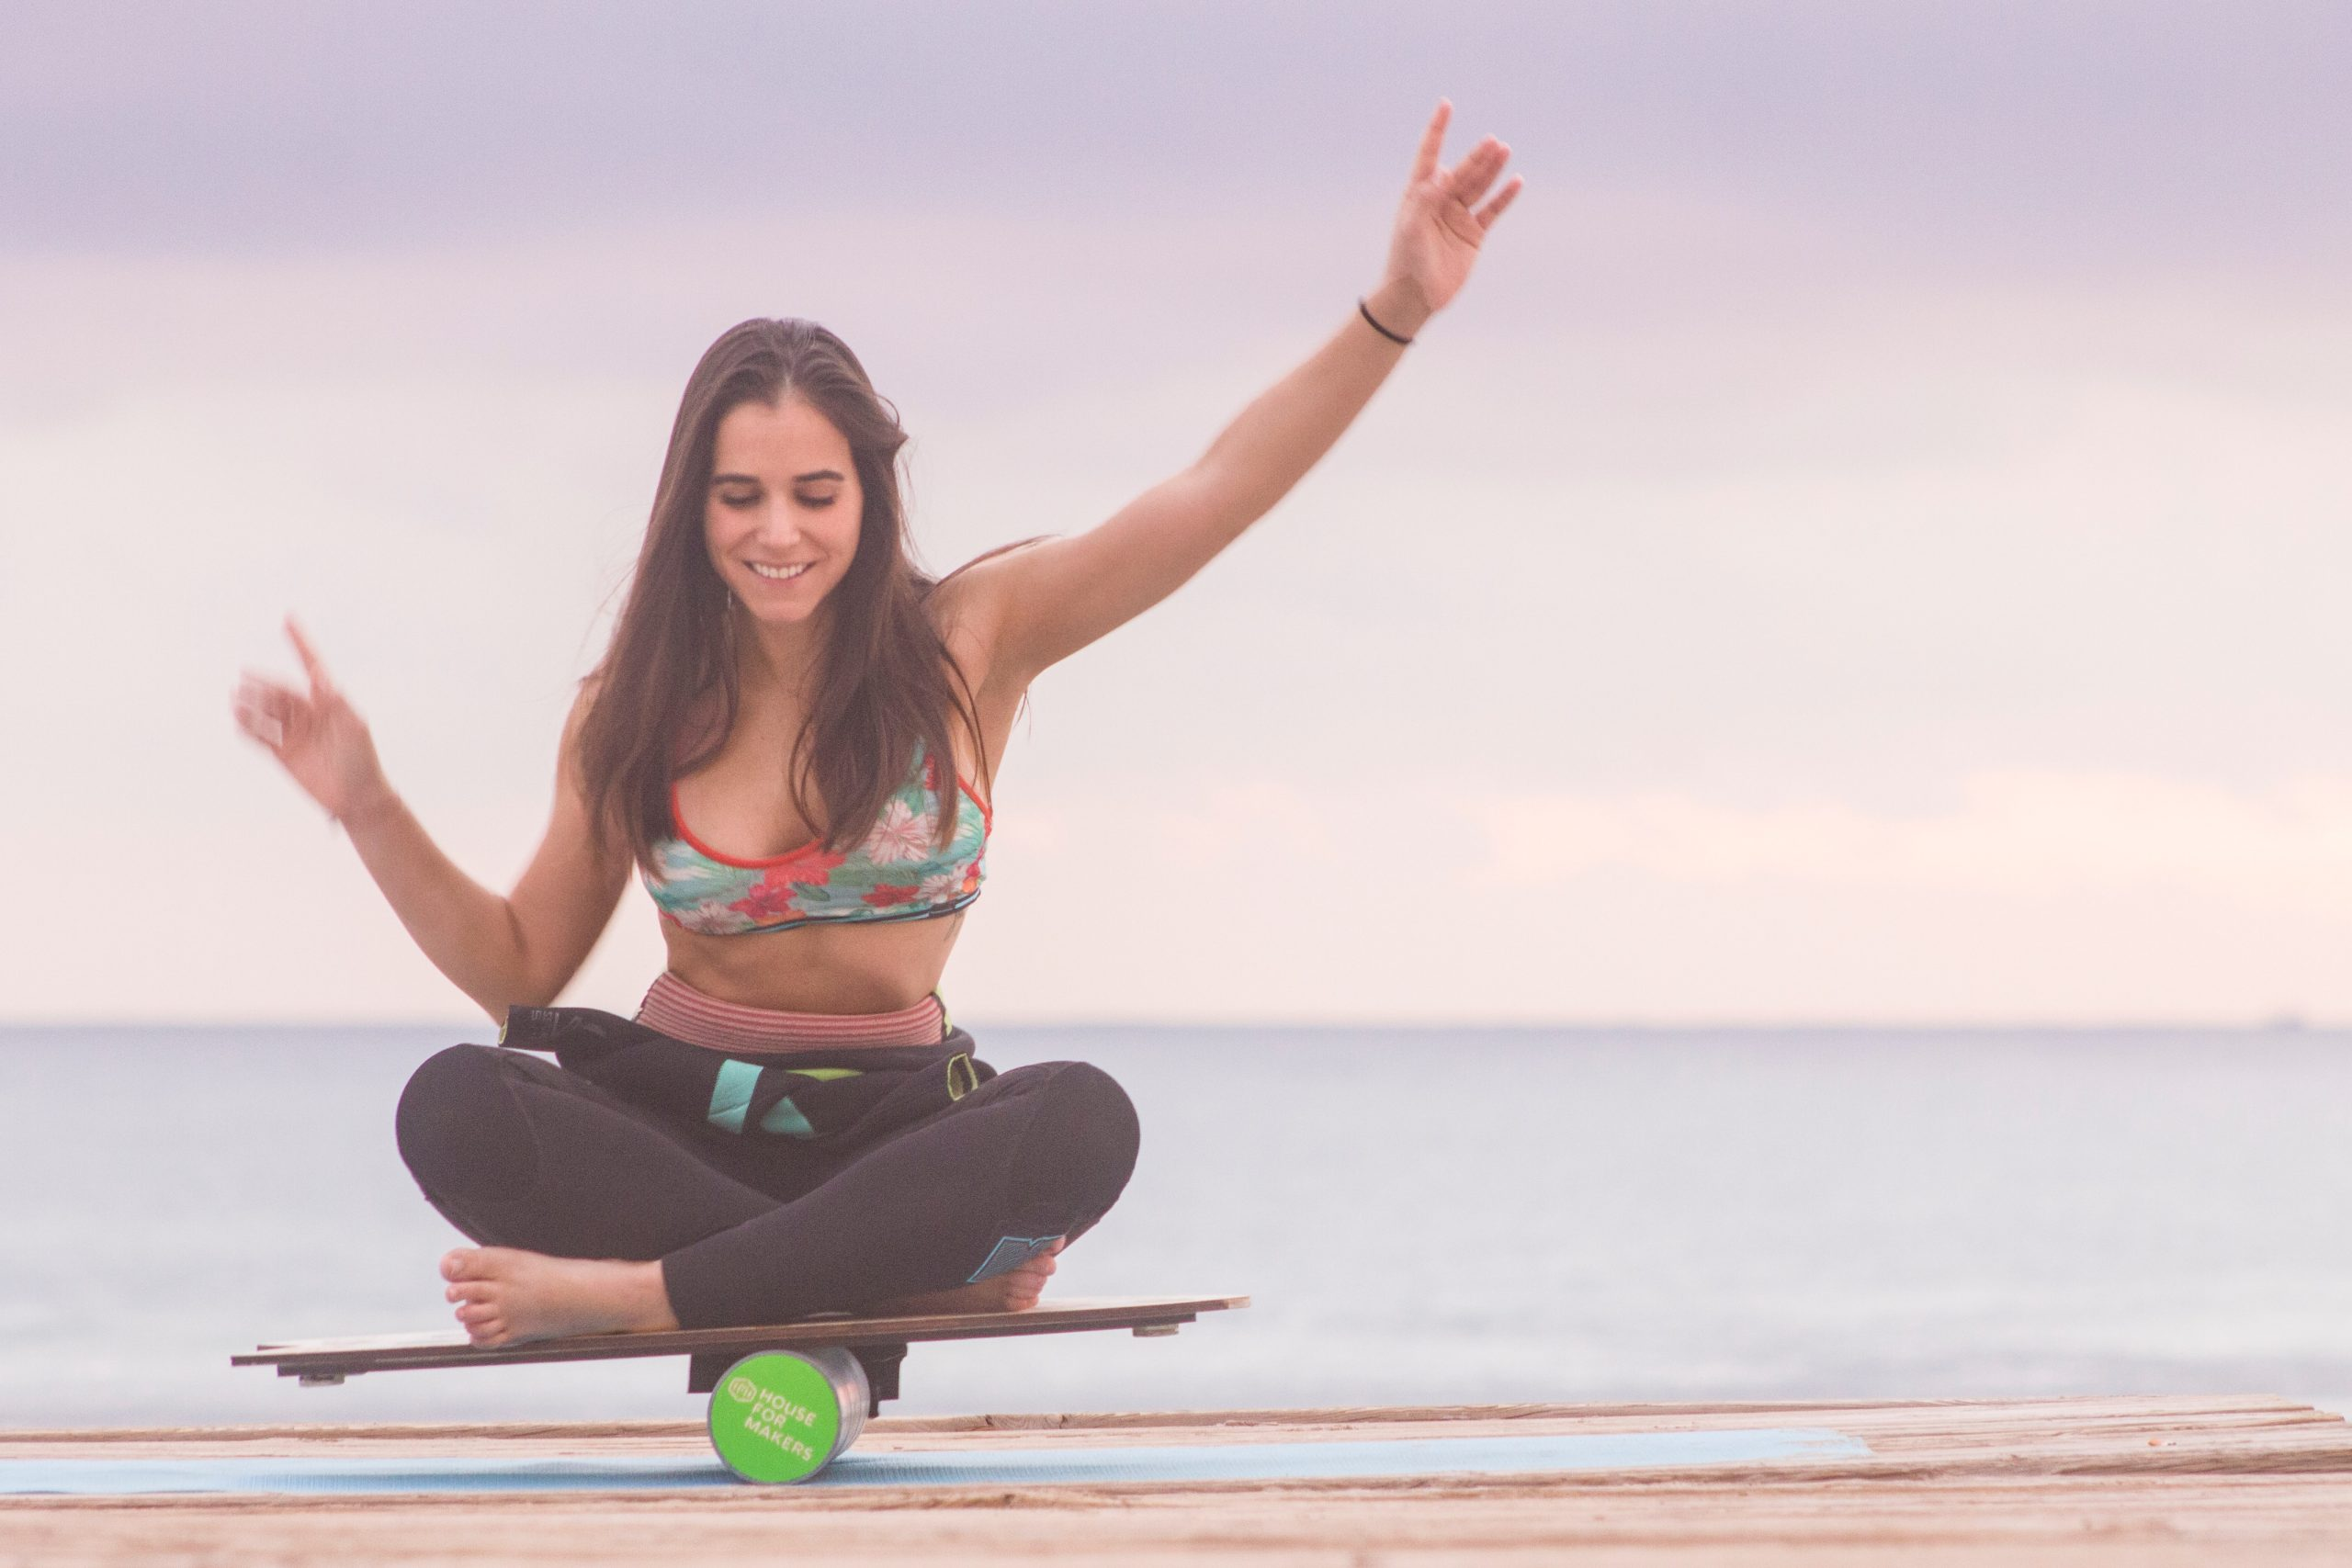 Balance training at sunrise on the beach before surf session